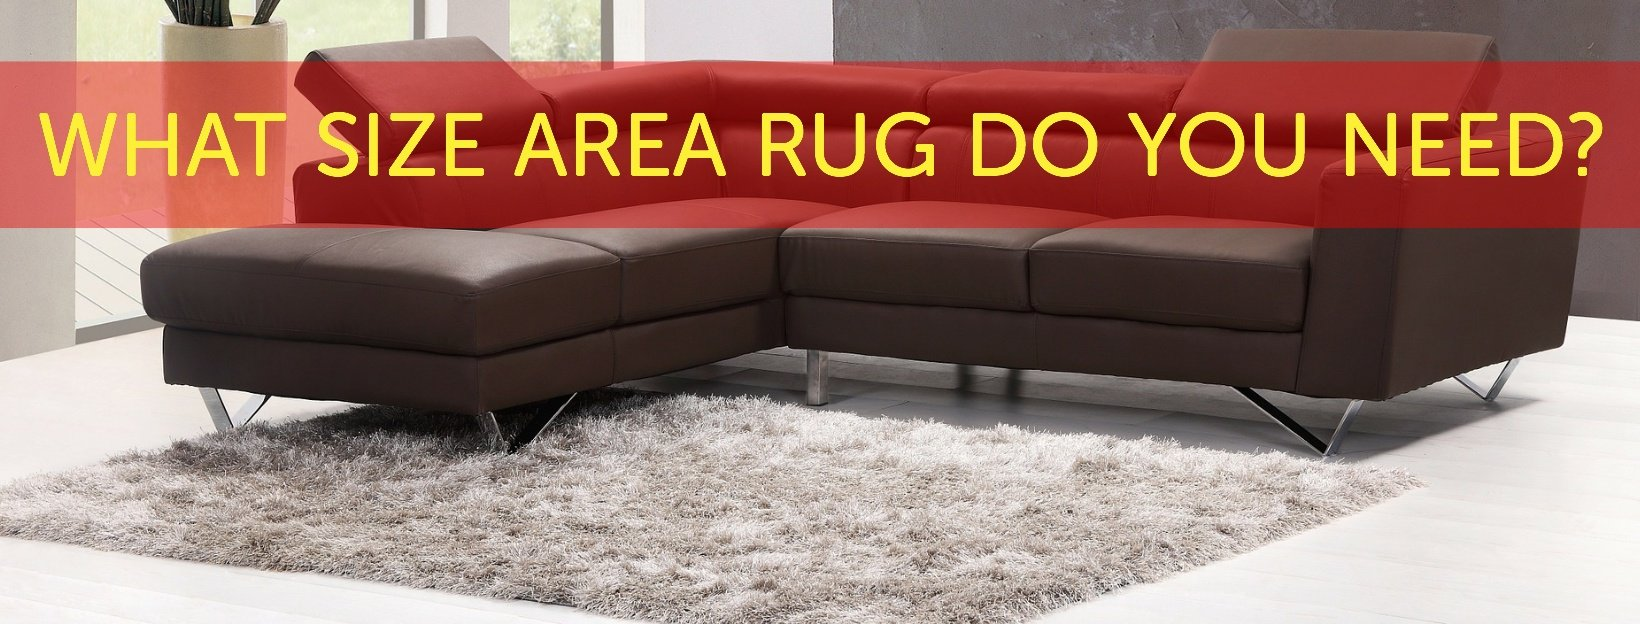 What Size Rug Does Your Room Need?